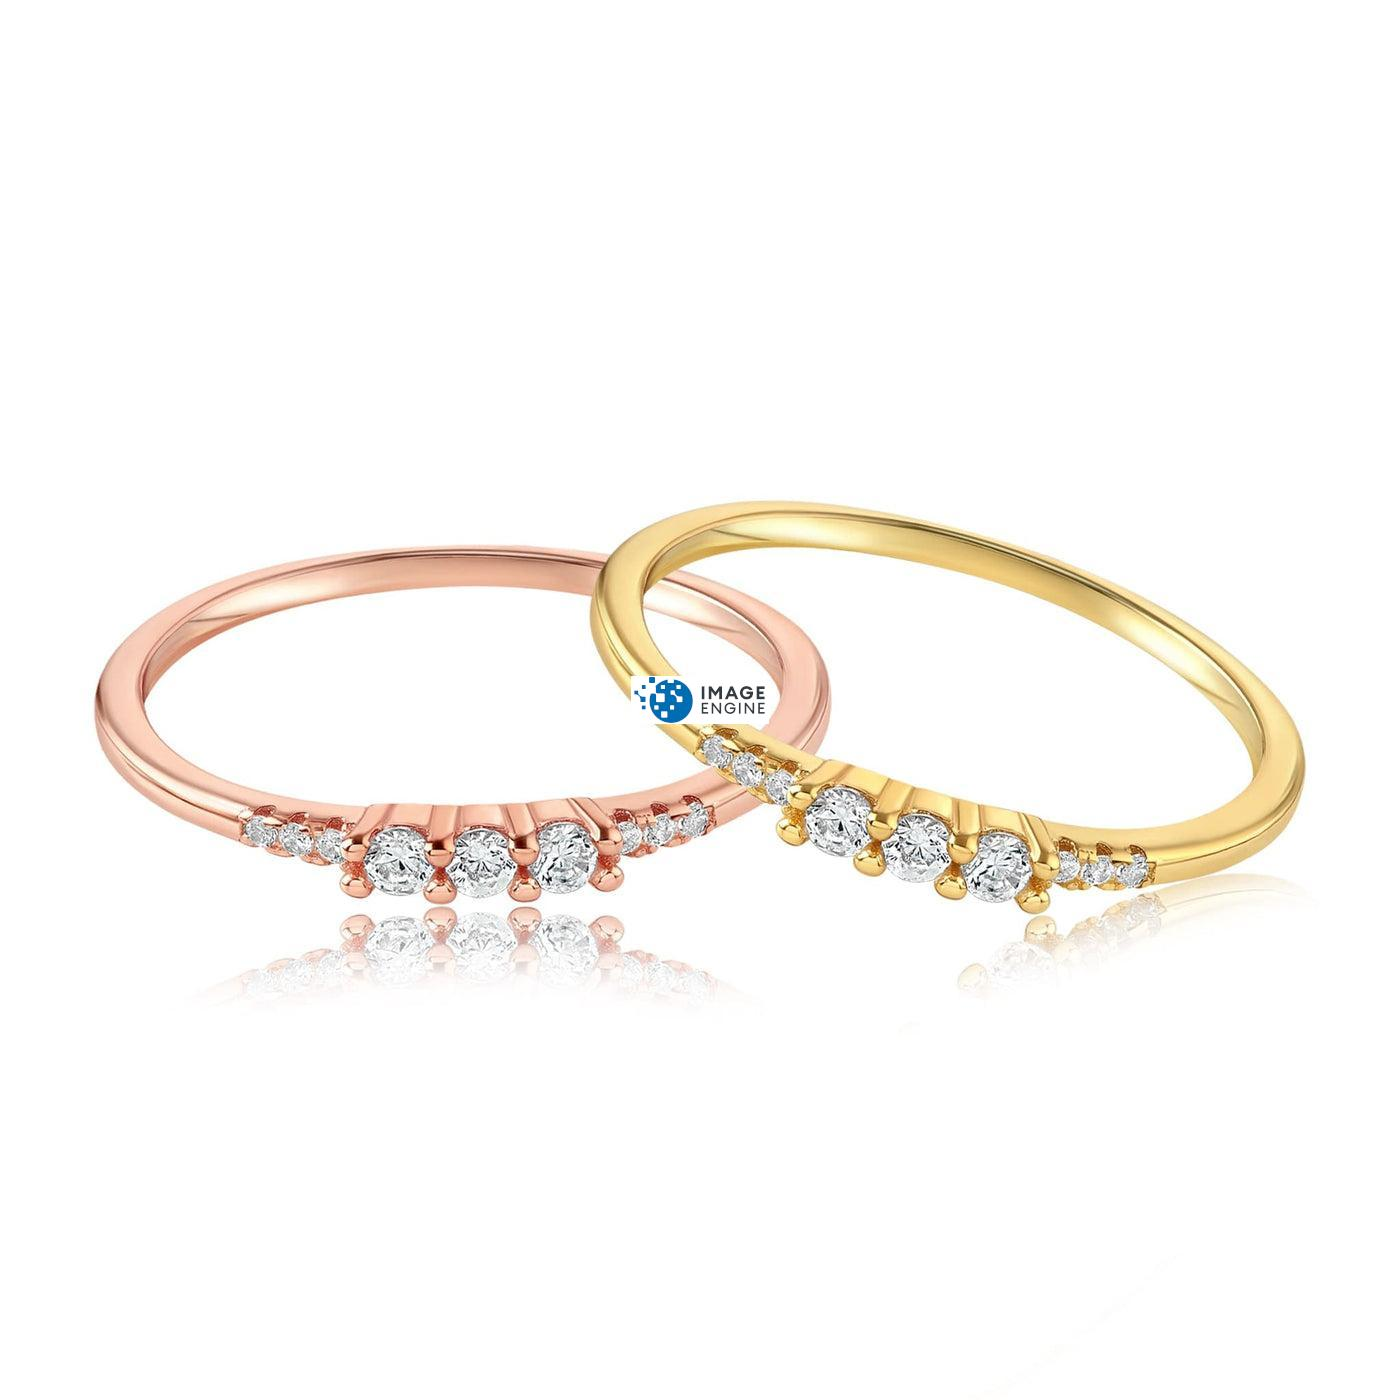 Emie Ring - Front View Side by Side - 18K Rose Gold Vermeil and 18K Yellow Gold Vermeil